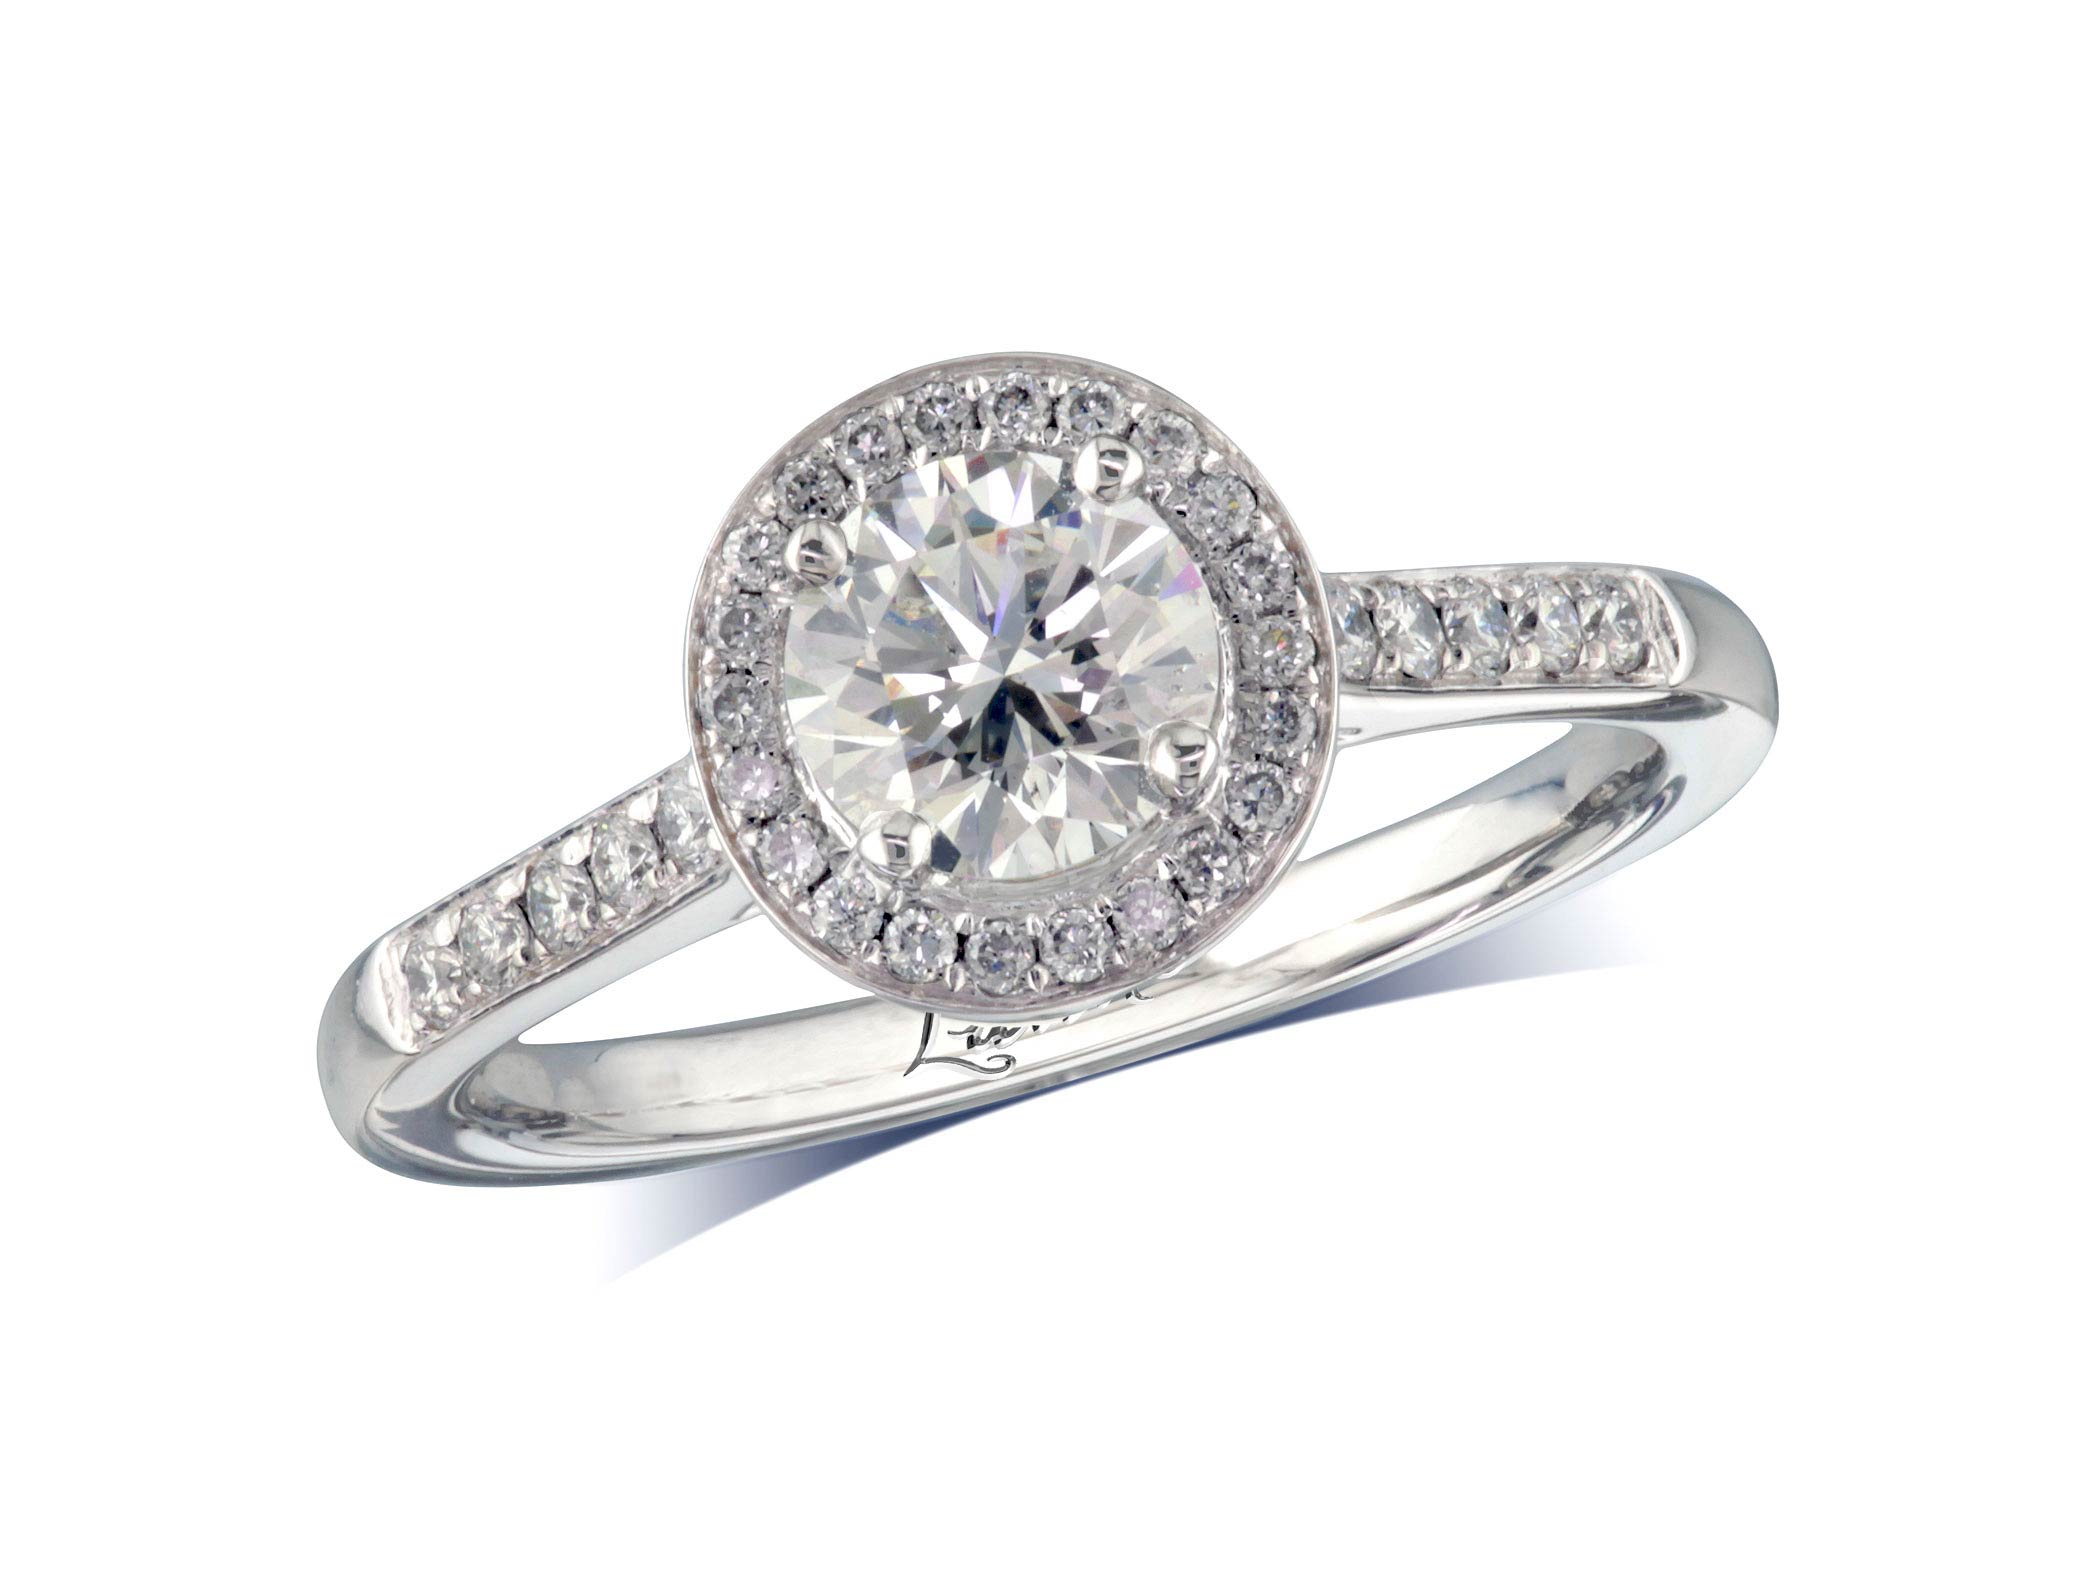 Centre brilliant h cluster diamond ring for Lindenwold fine jewelers jewelry showroom price